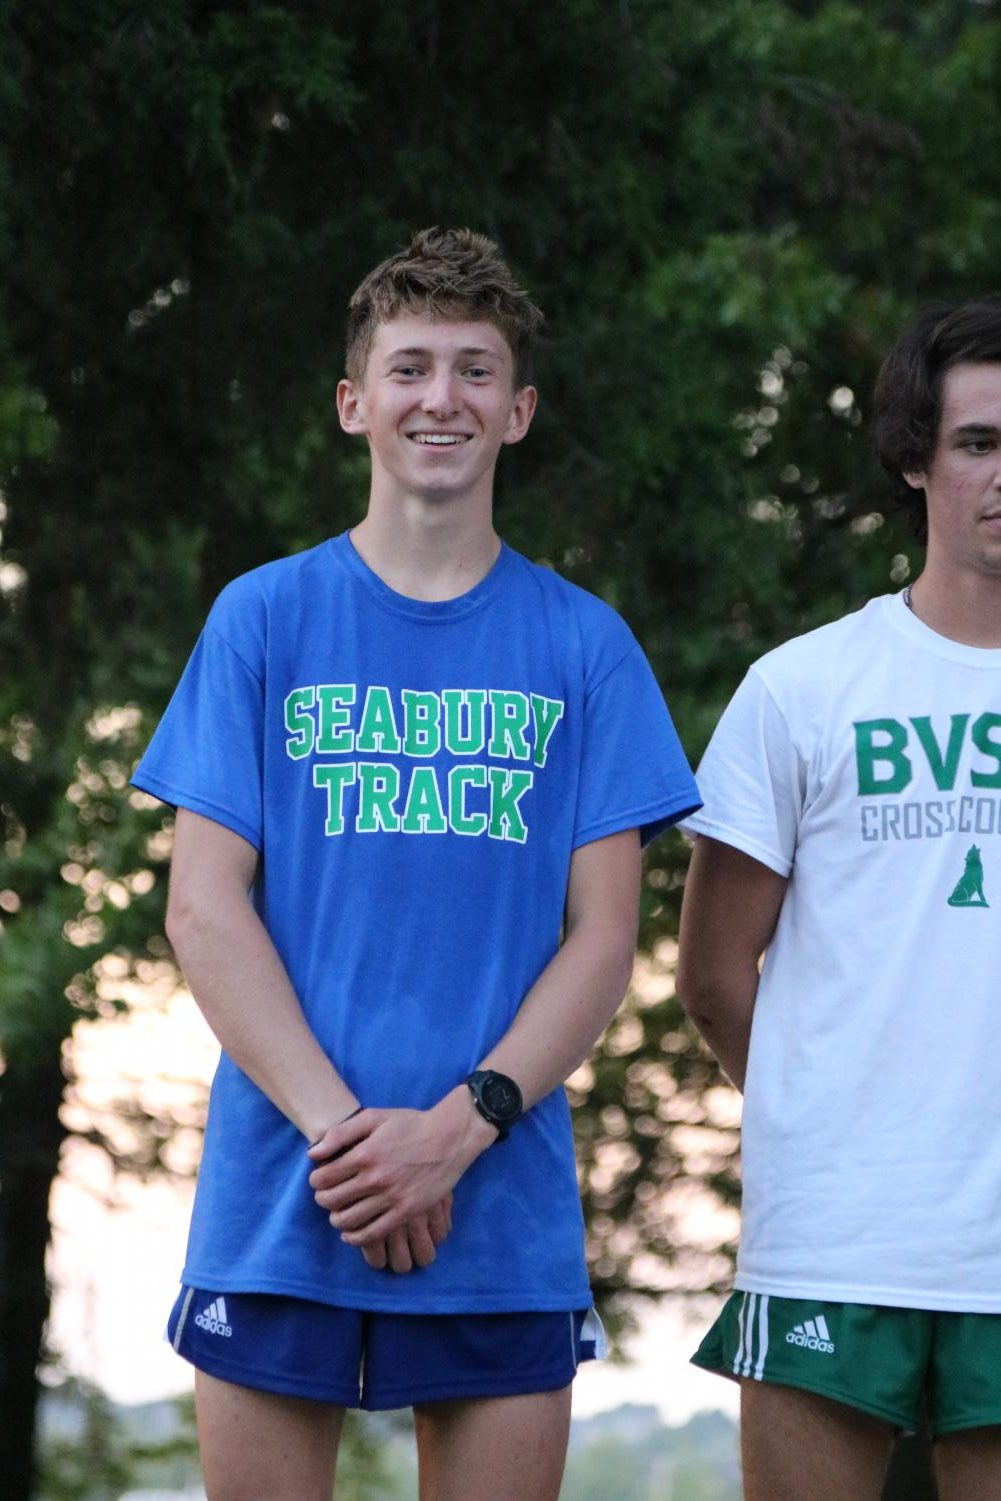 Senior+Henry+Nelson+poses+for+a+photo+during+a+cross+country+medal+ceremony.+Nelson+has+placed+first+in+all+the+meets+he+has+run.